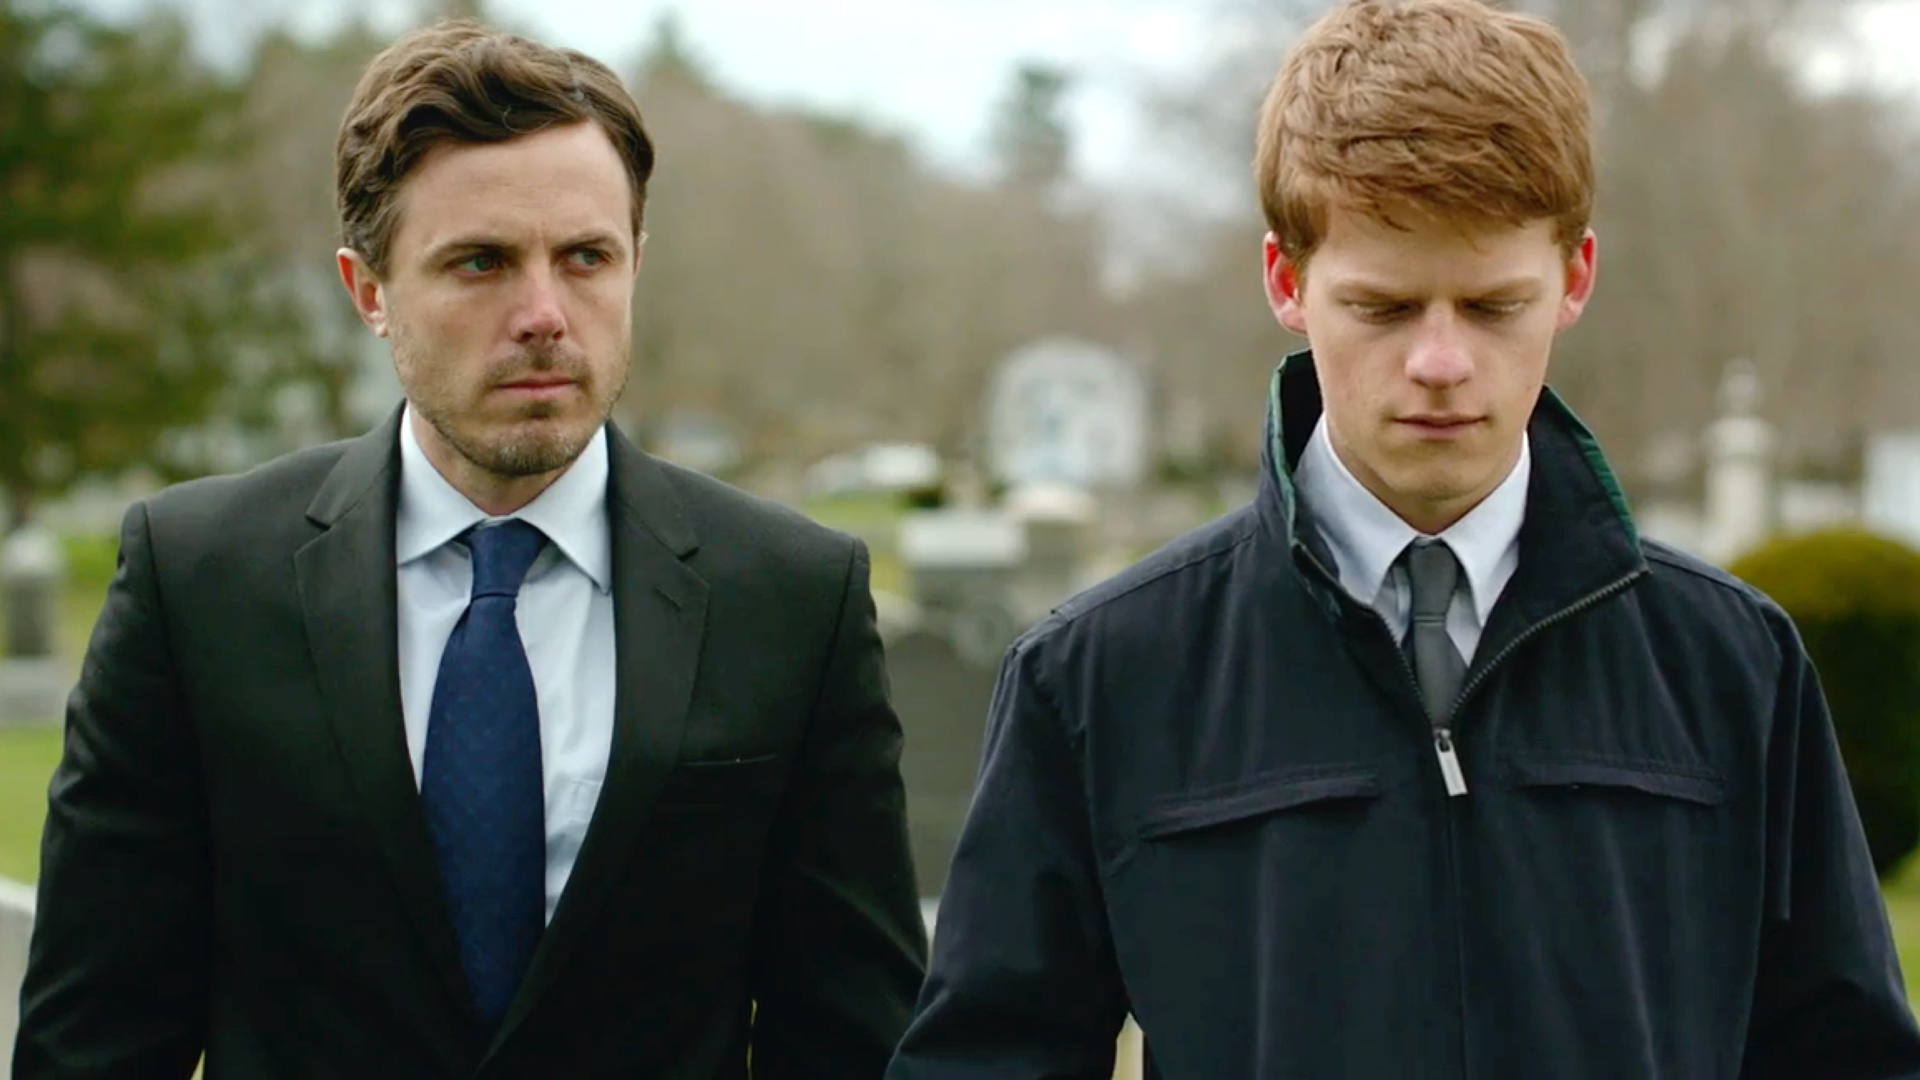 MANCHESTER BY THE SEA – REVIEW